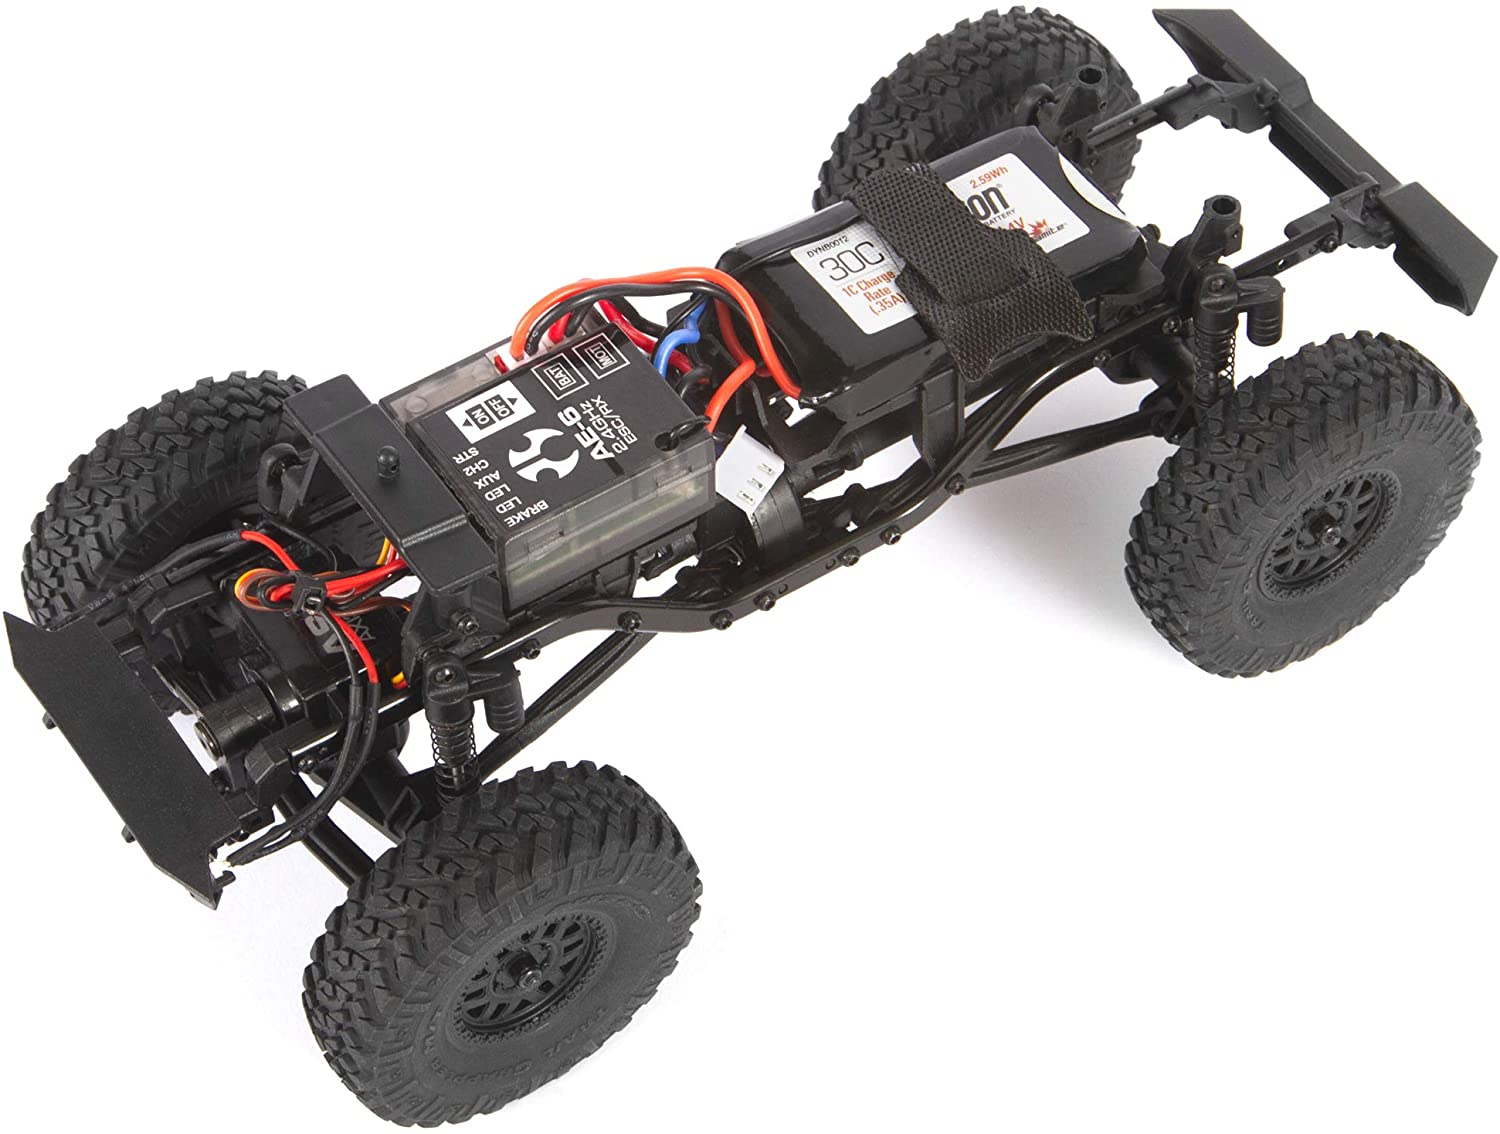 and USB Charger: Axial SCX24 2019 Jeep Wrangler JLU CRC RC Crawler 4WD Truck RTR with LED Lights Battery 3-Ch 2.4GHz Transmitter AXI00002T1 White